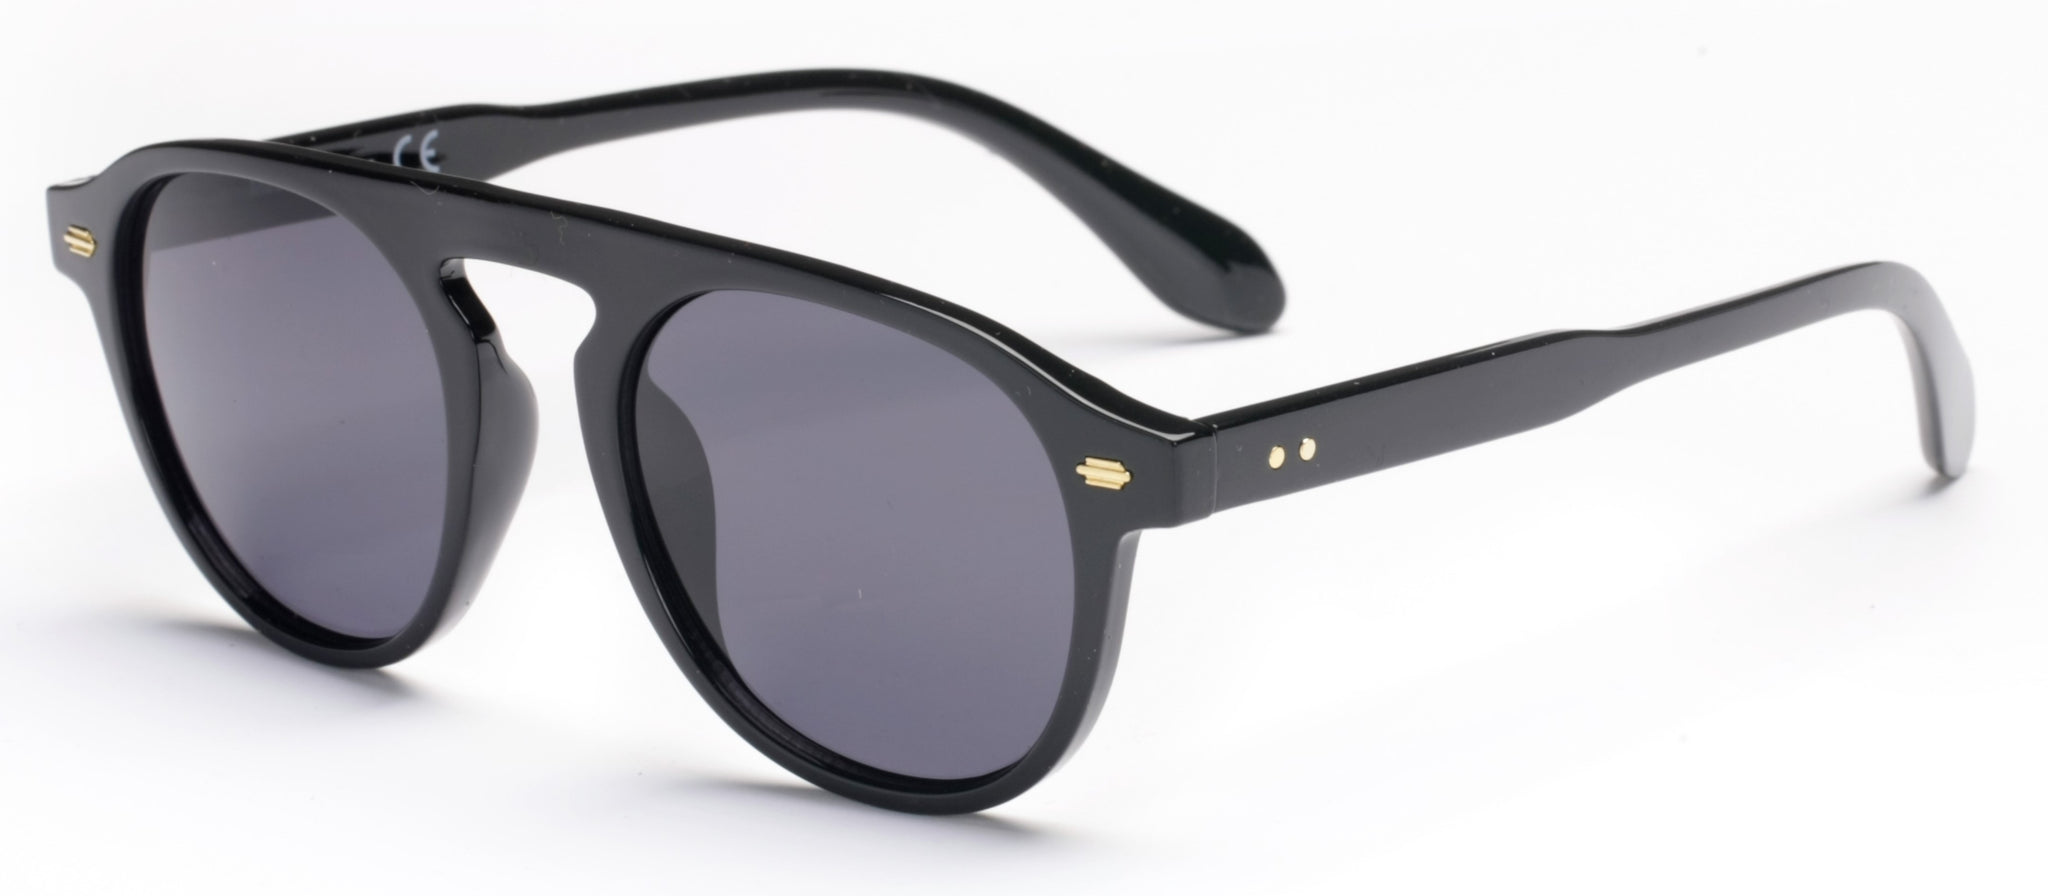 Unisex Round Fashion Sunglasses